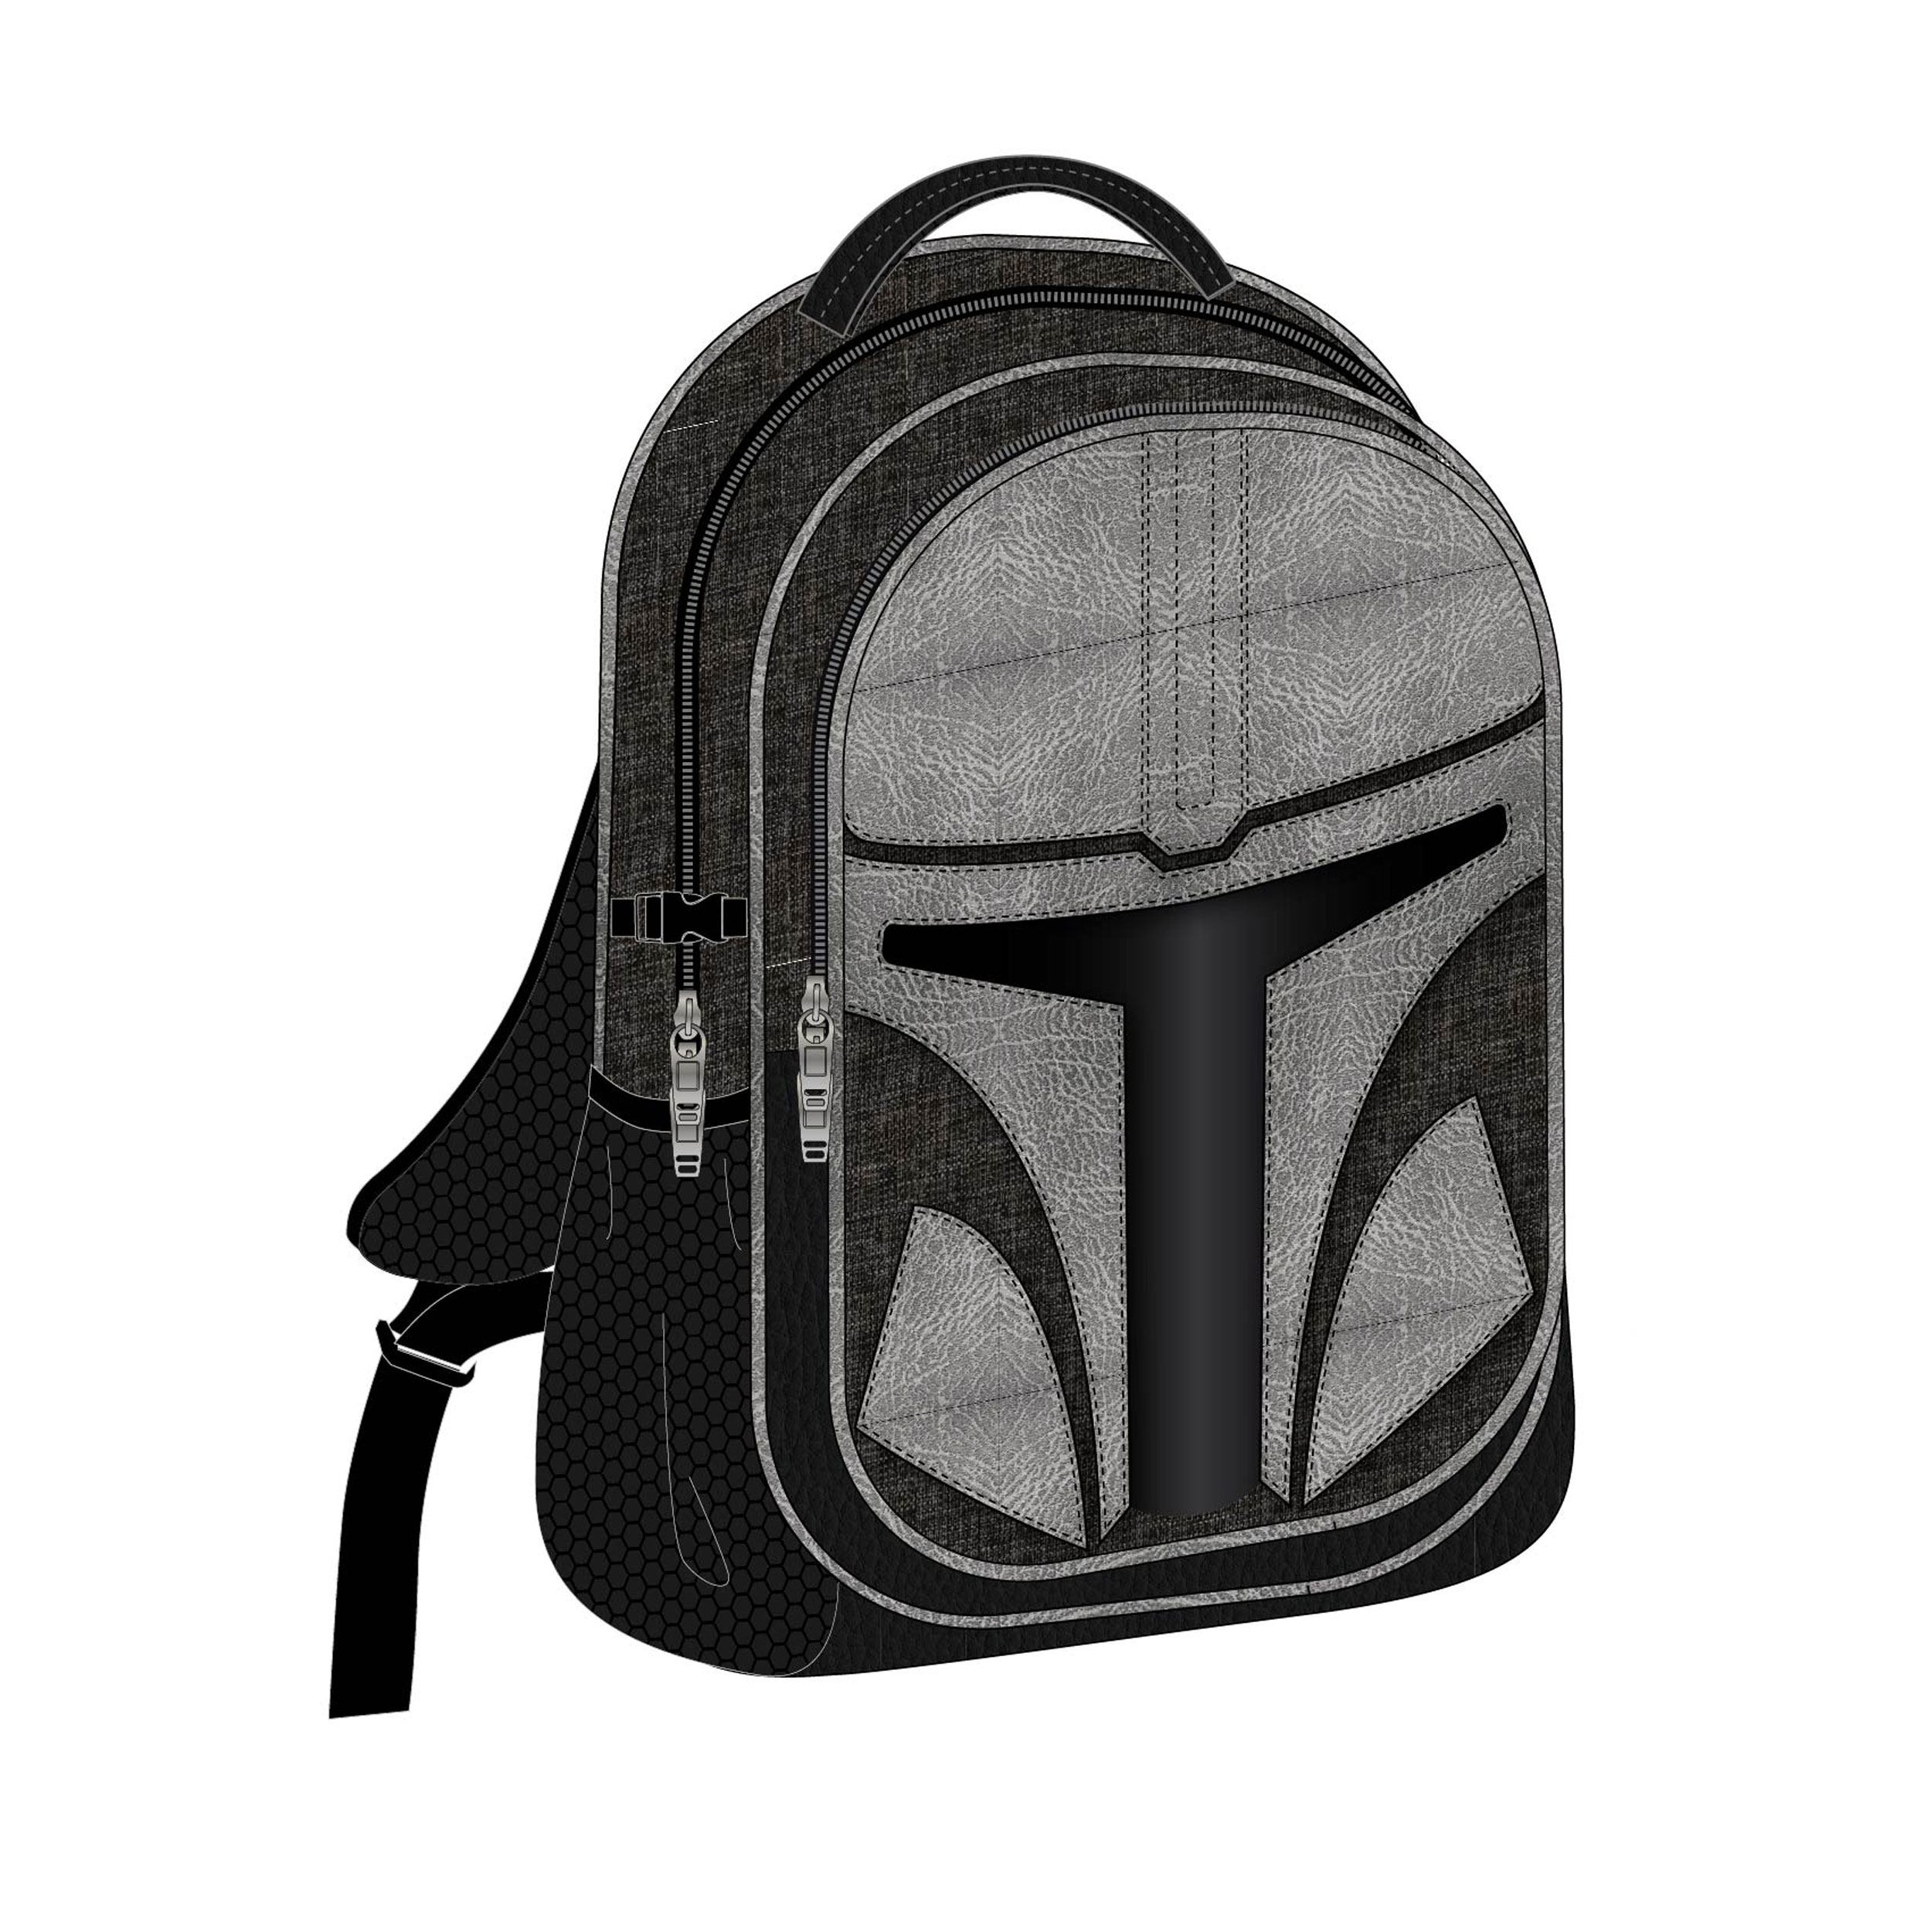 Batoh Star Wars The Mandalorian Casual Fashion Backpack The Mandalorian